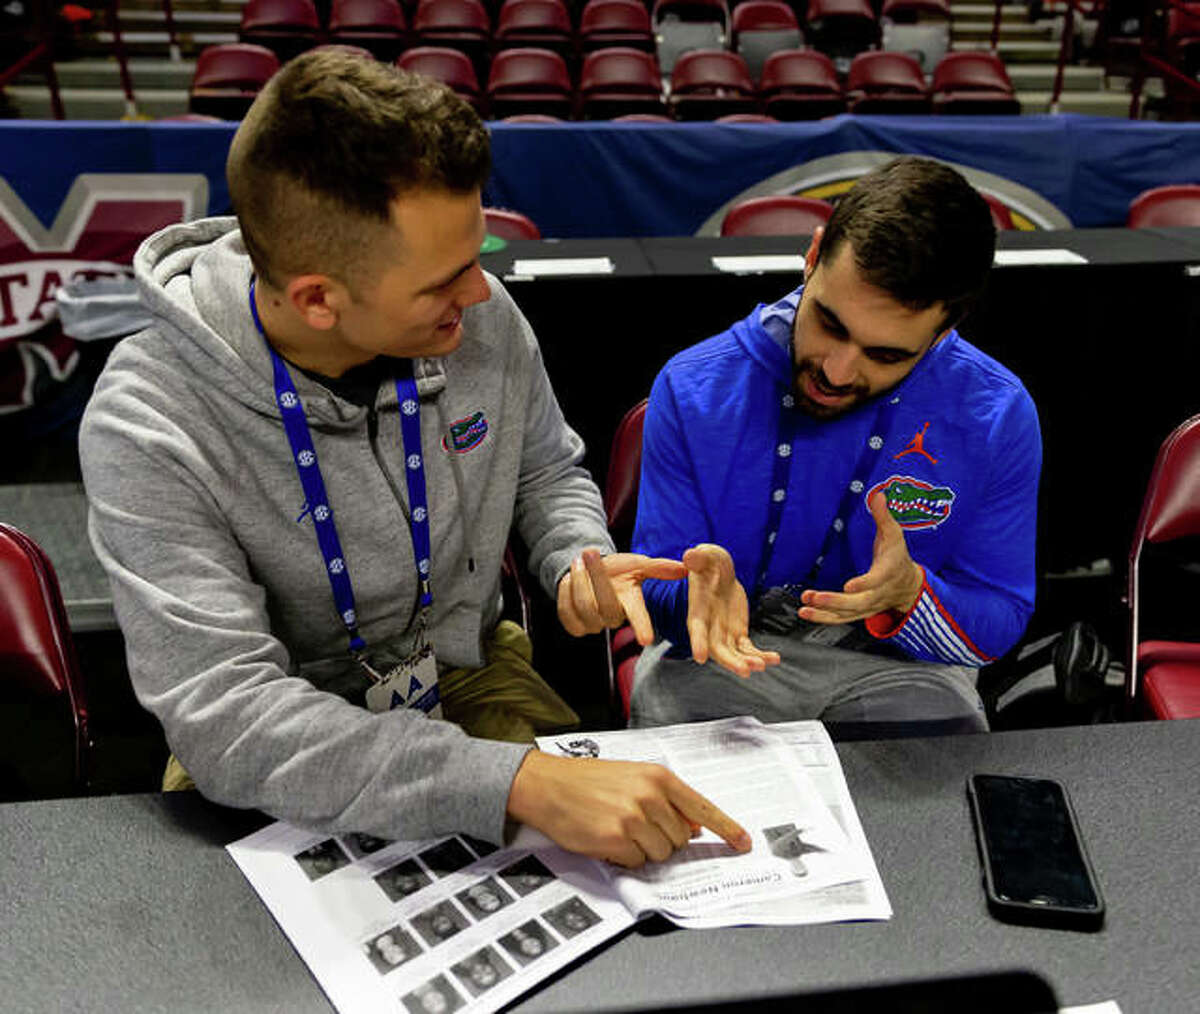 Sam Stolte, left, is working as an Assistant Director for the women's basketball and women's tennis teams at the University of Florida. His primary responsibility is working as a media liaison for the two programs.